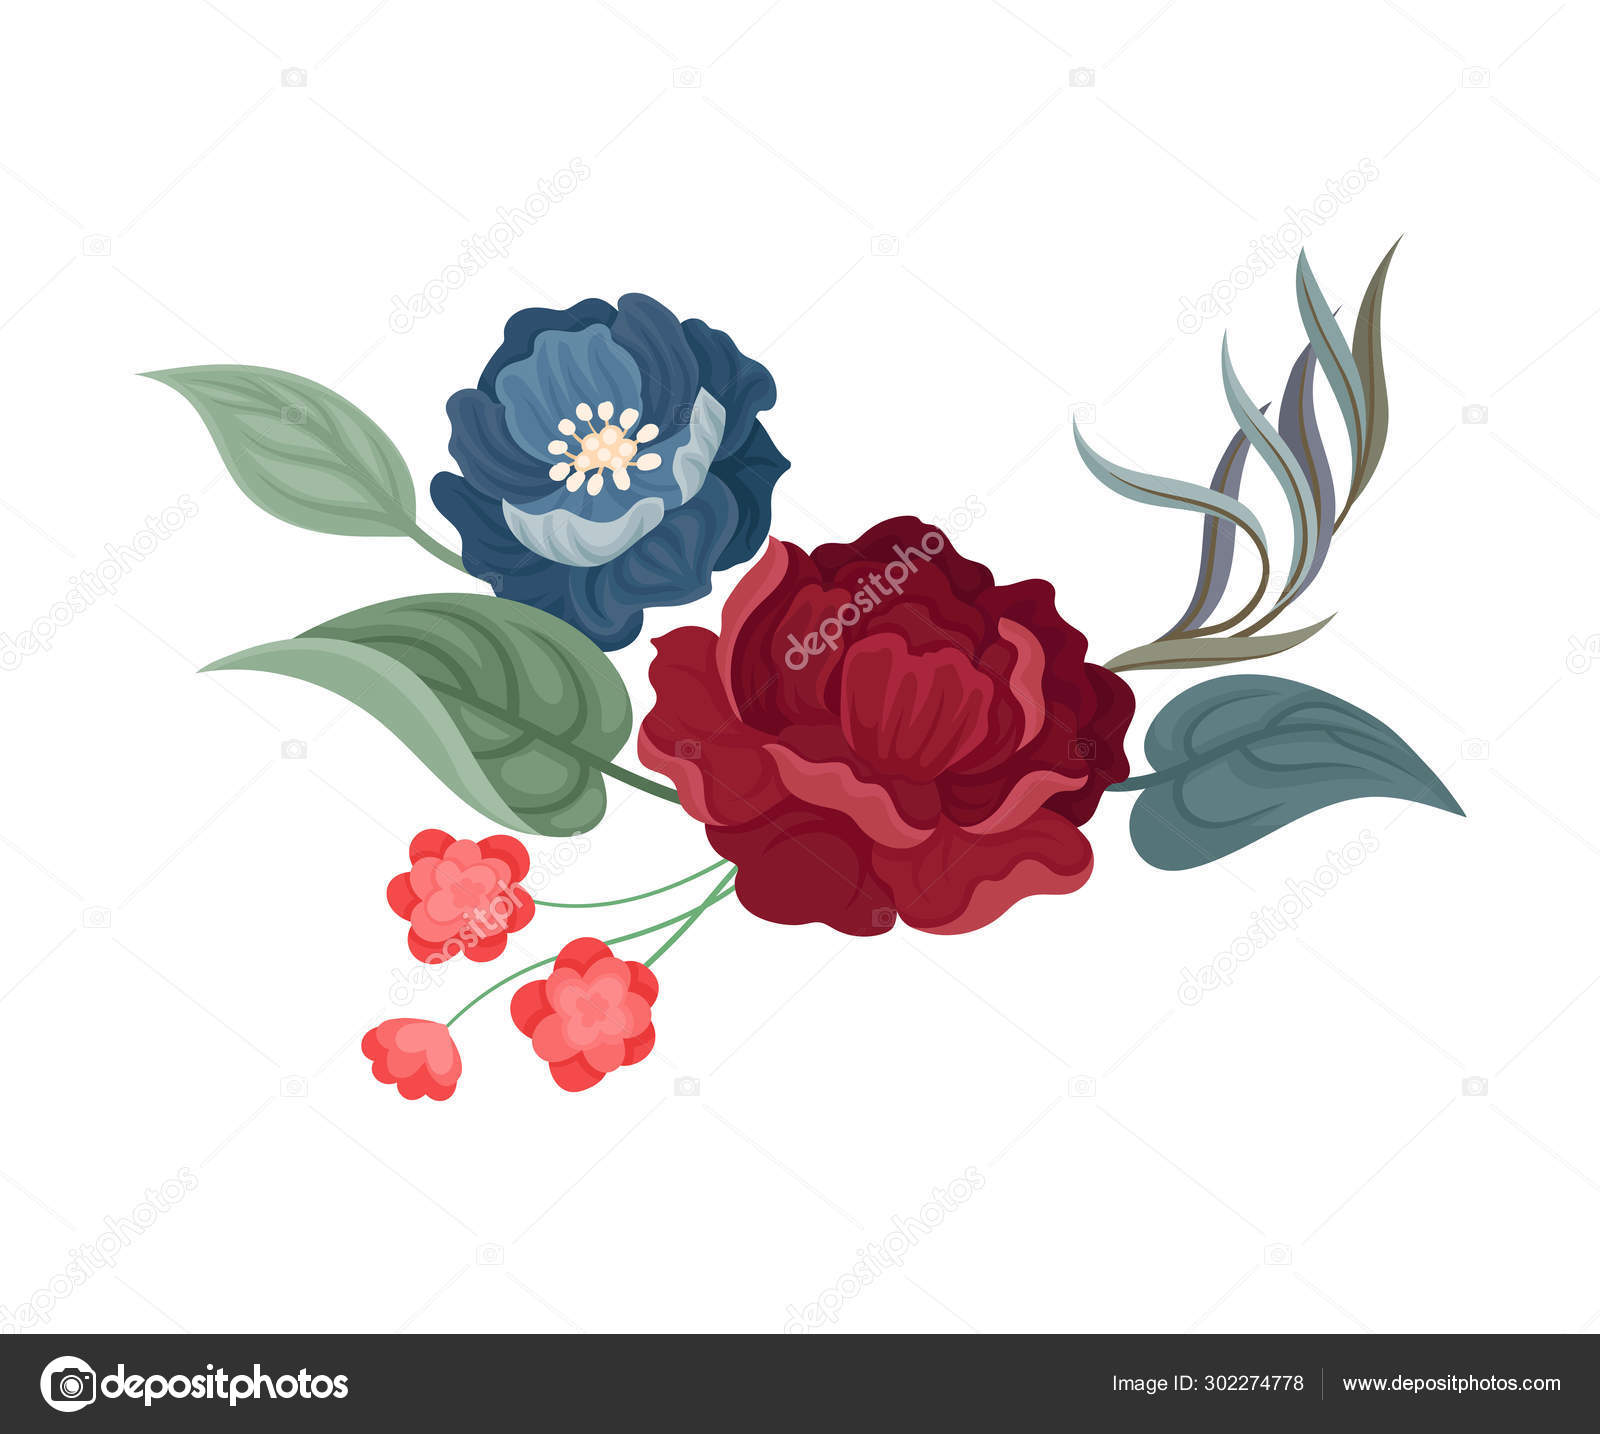 Dark Red Rose And Large Blue Flower Vector Illustration On A White Background Vector Image By C Happypictures Vector Stock 302274778